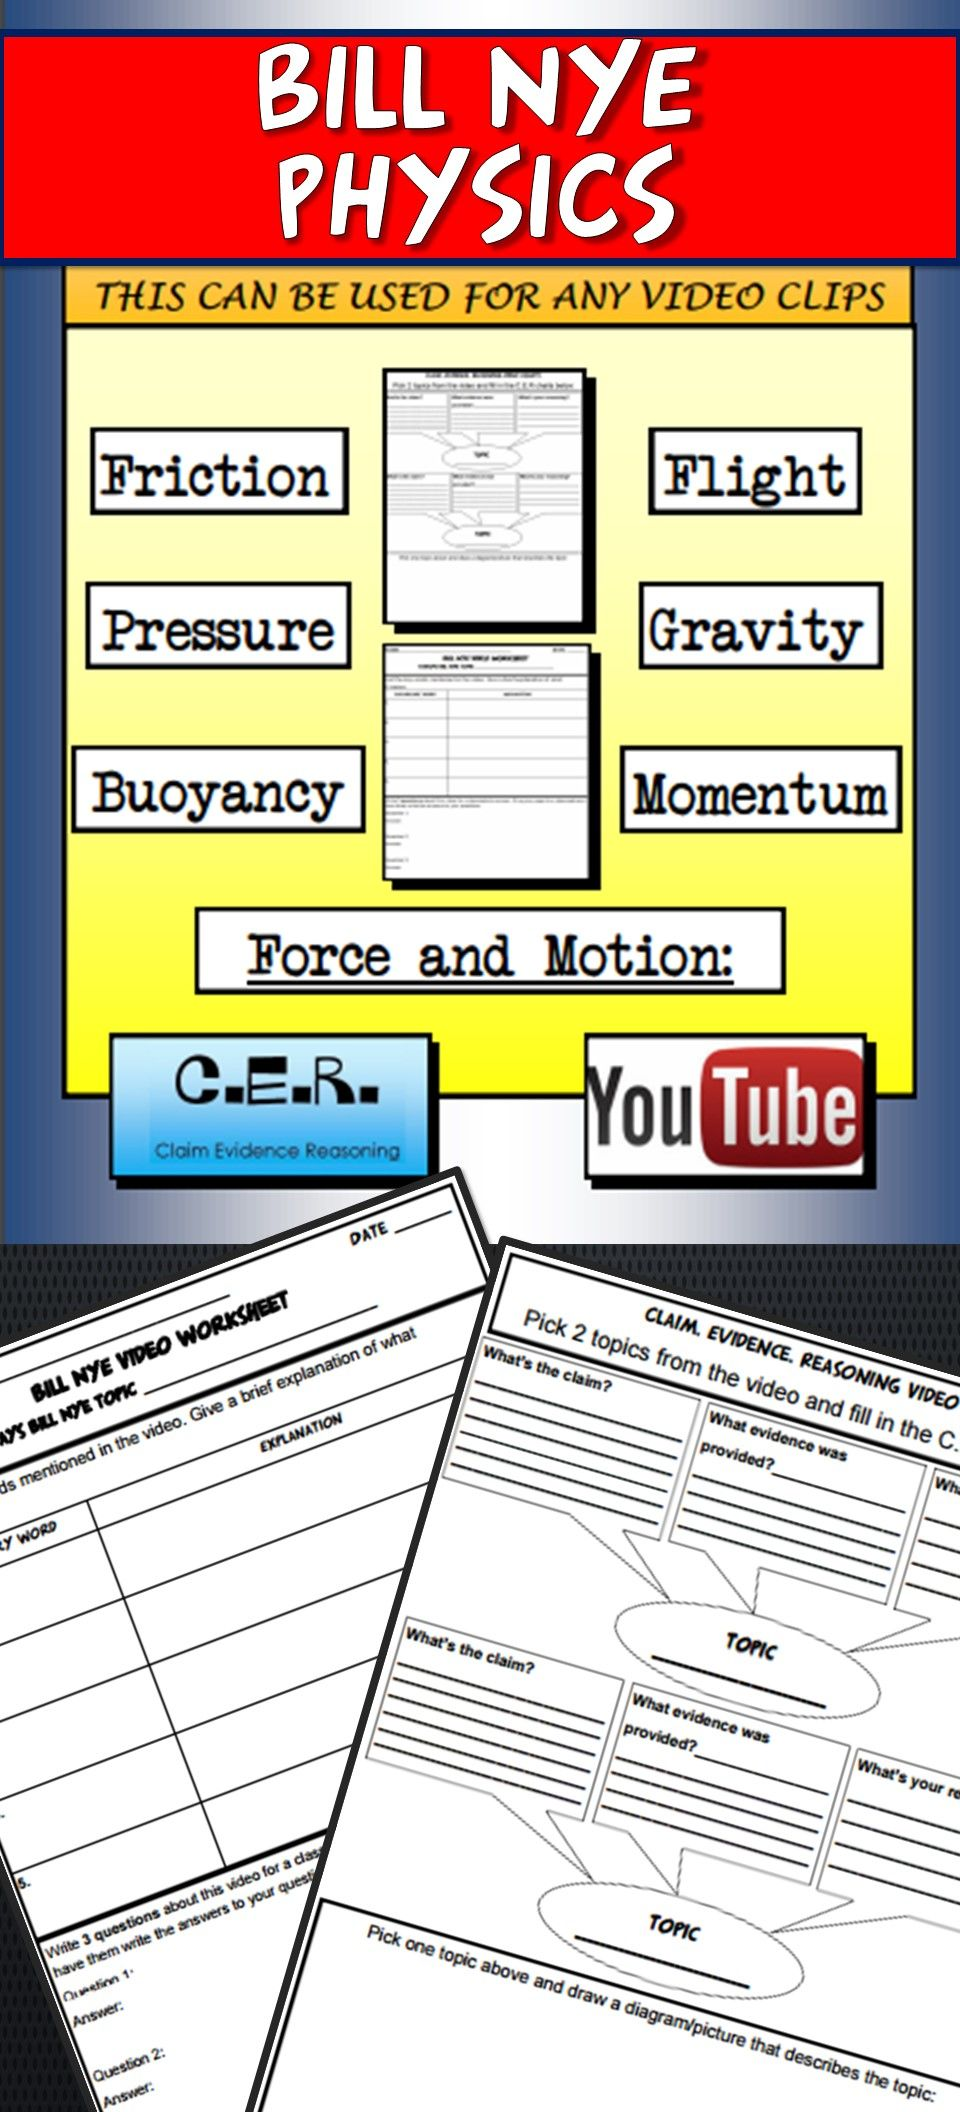 BILL NYE Physics Video Template and Claim Evidence Reasoning CER